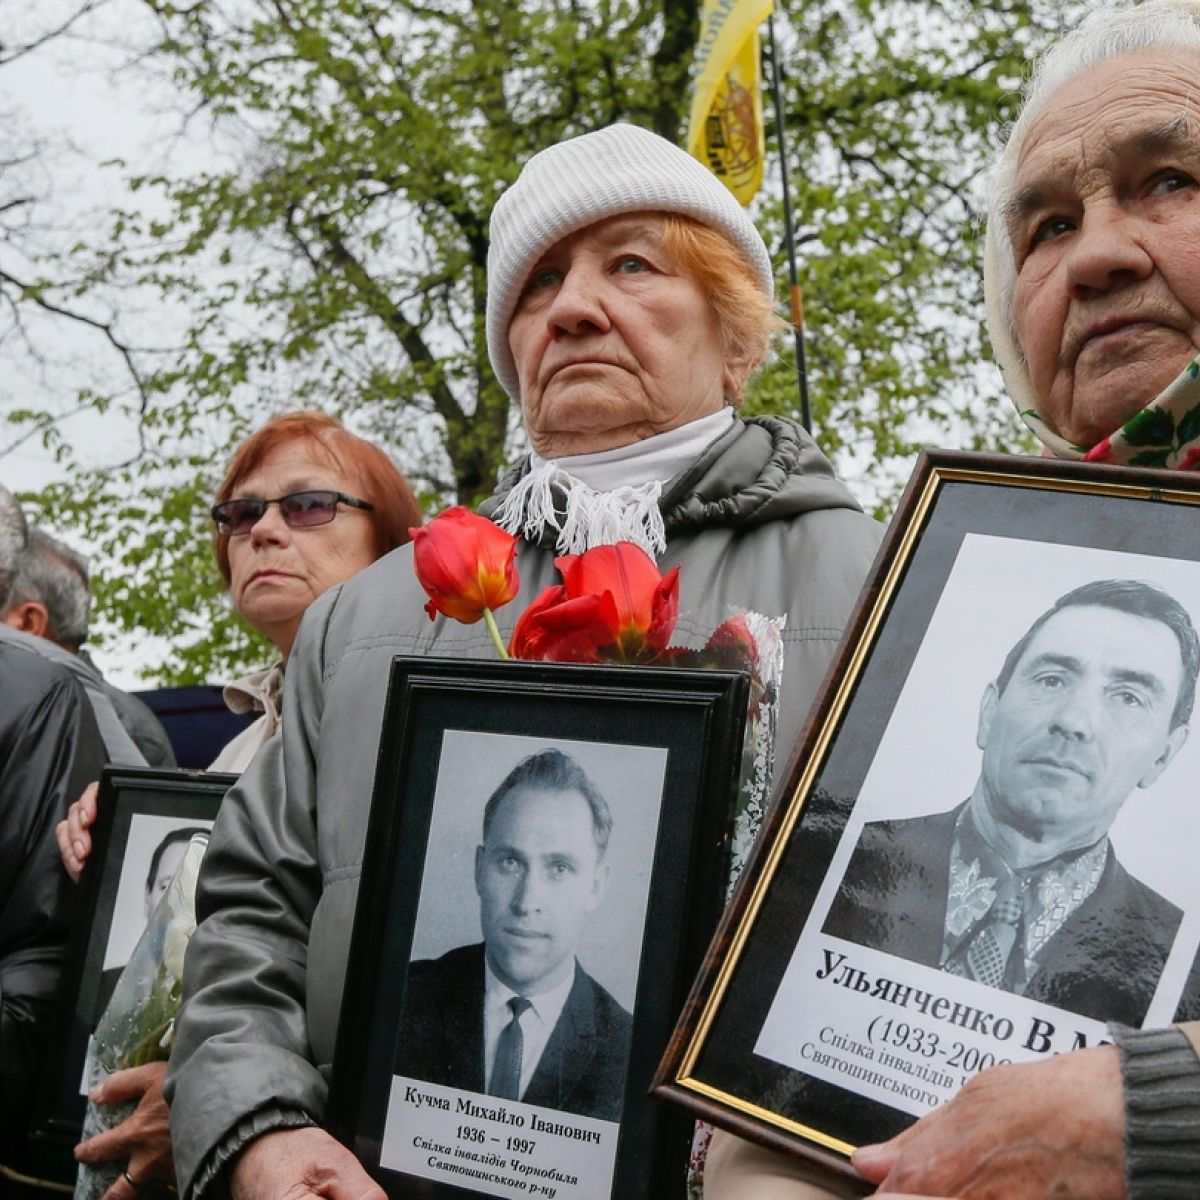 Ukraine, Belarus and Russia honour Chernobyl victims